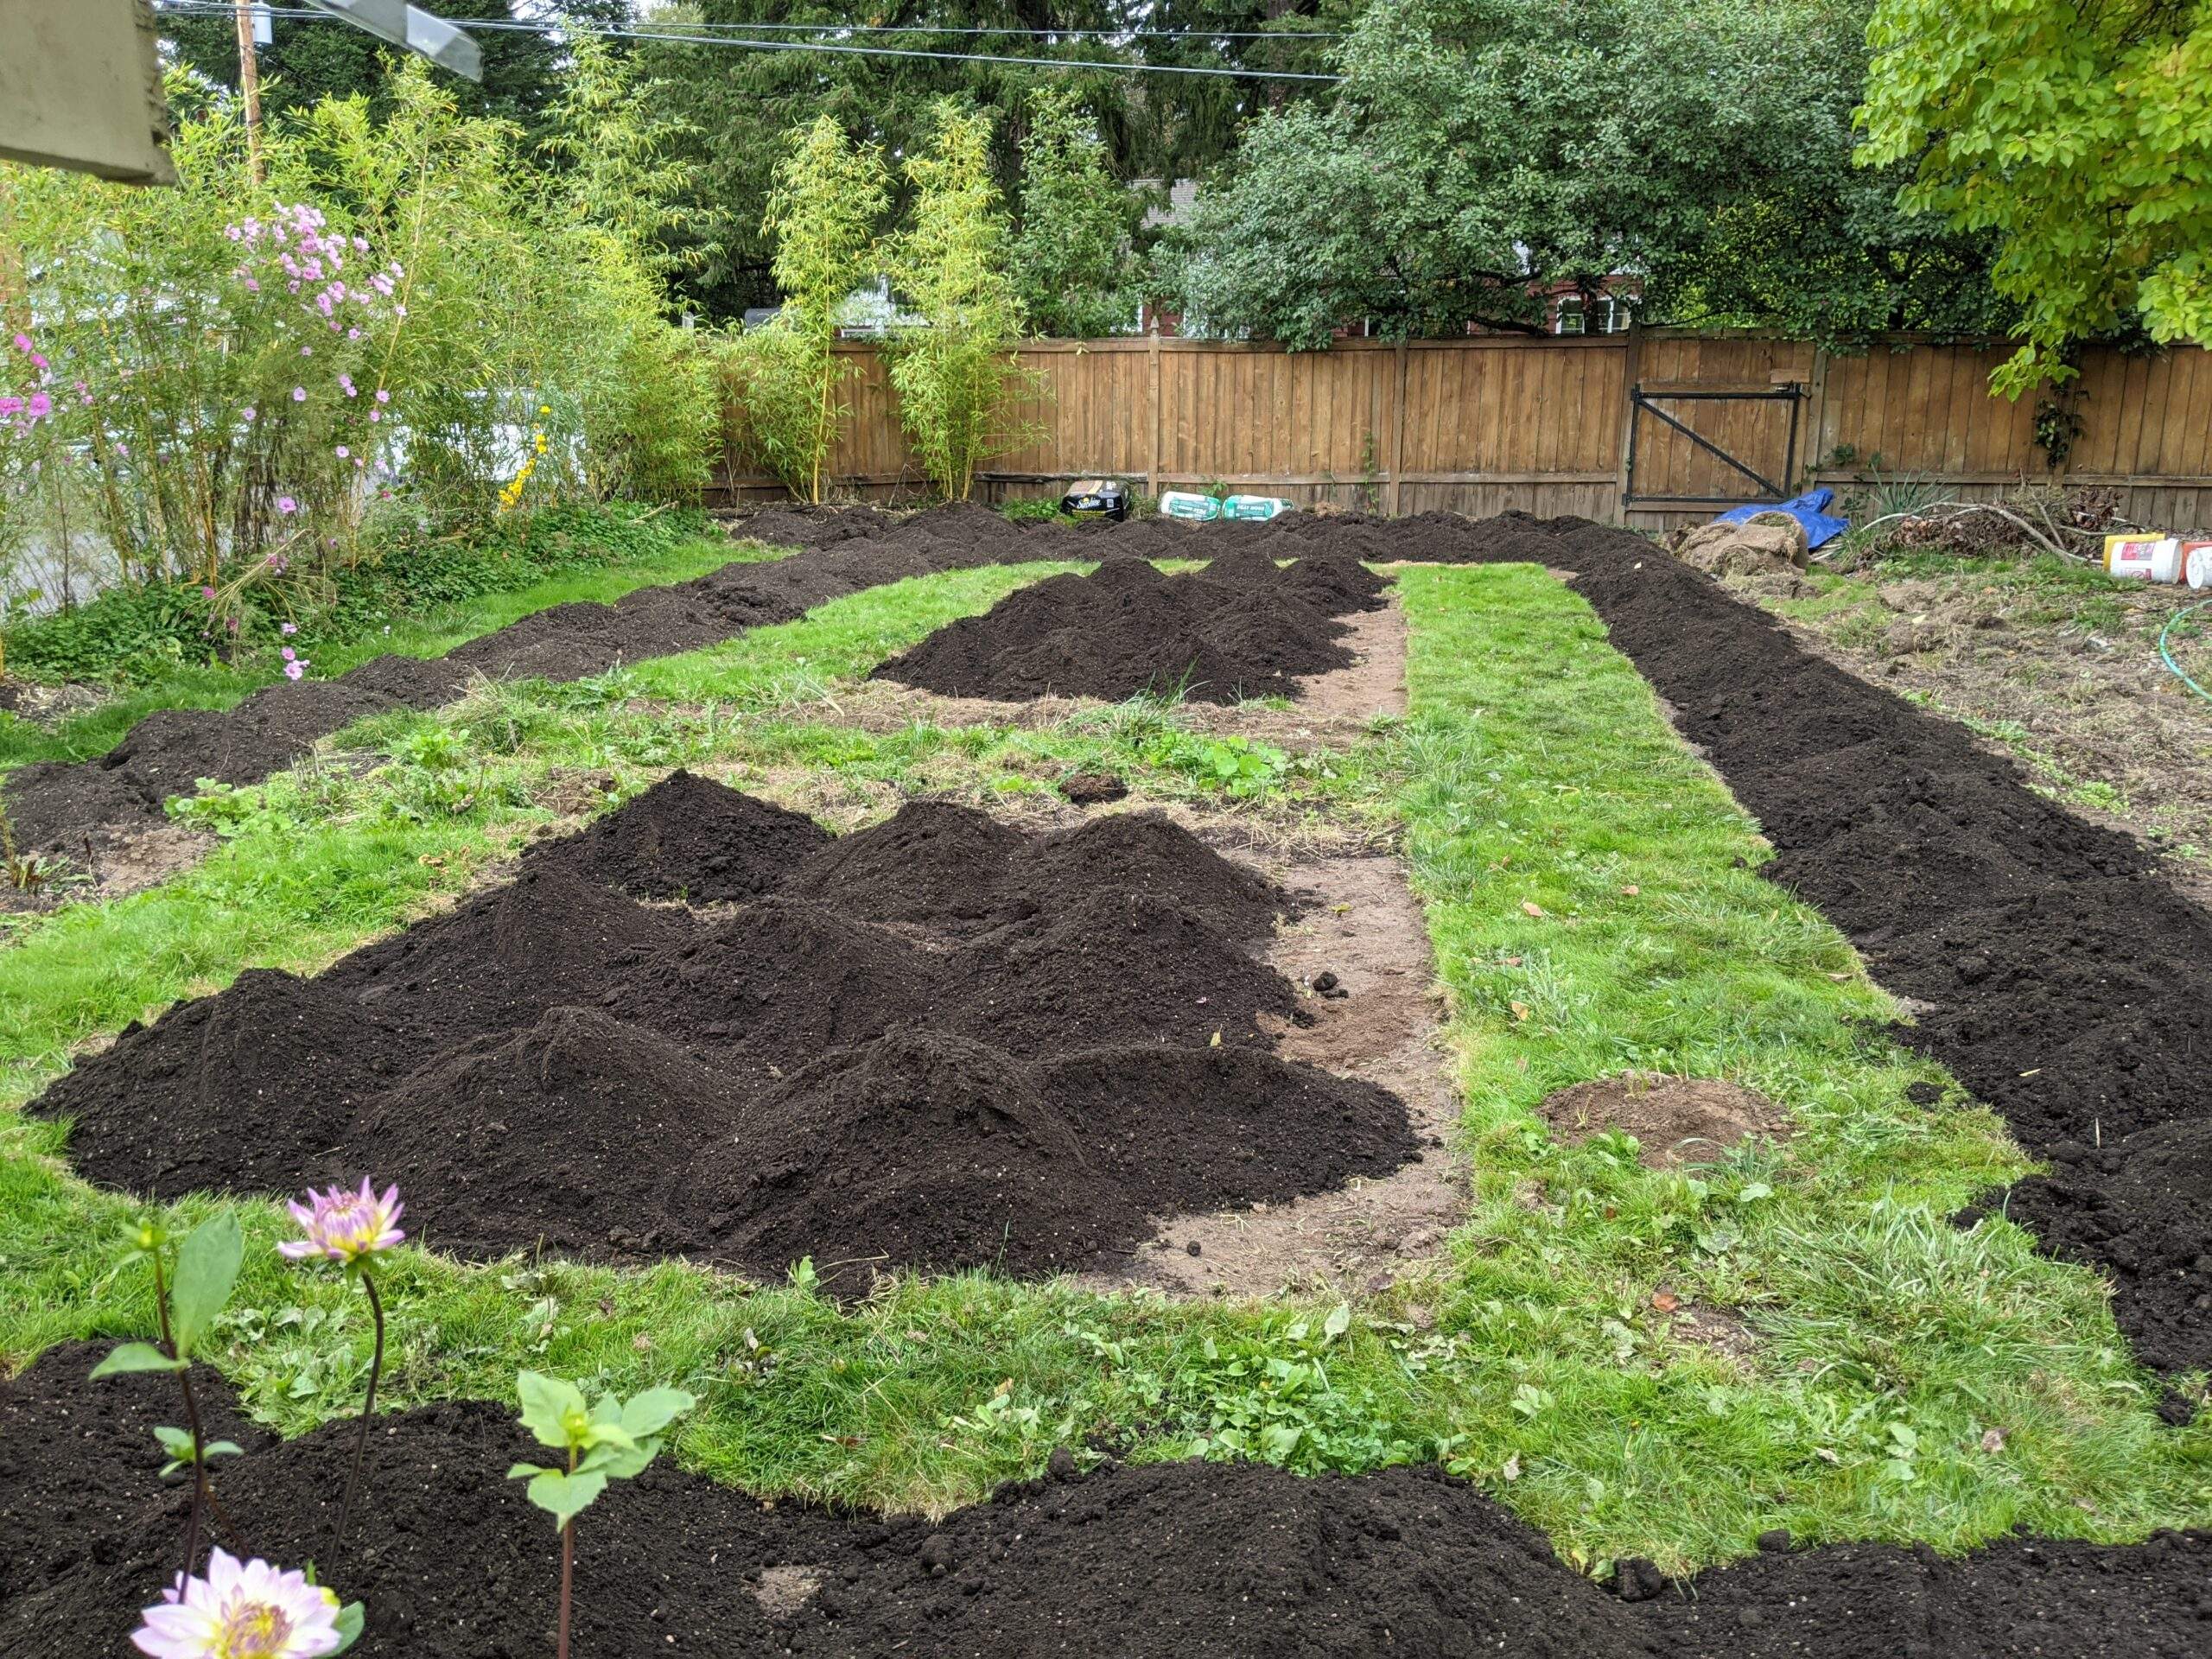 garden beds with piles of compost ready for planting